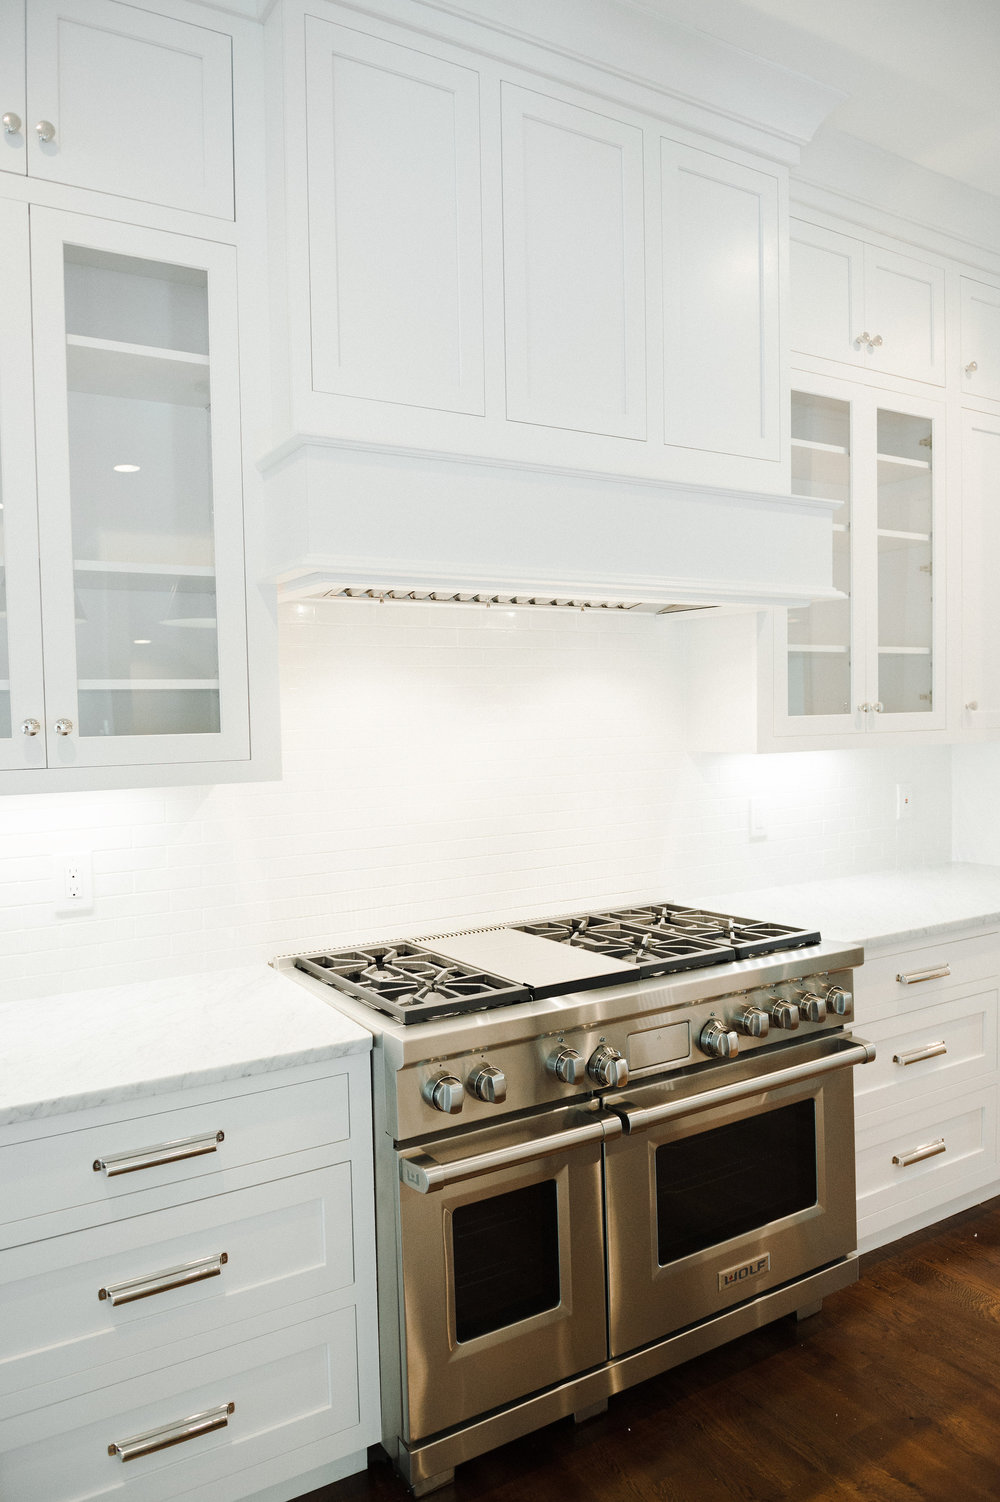 White inset cabinets and hood design || Studio McGee